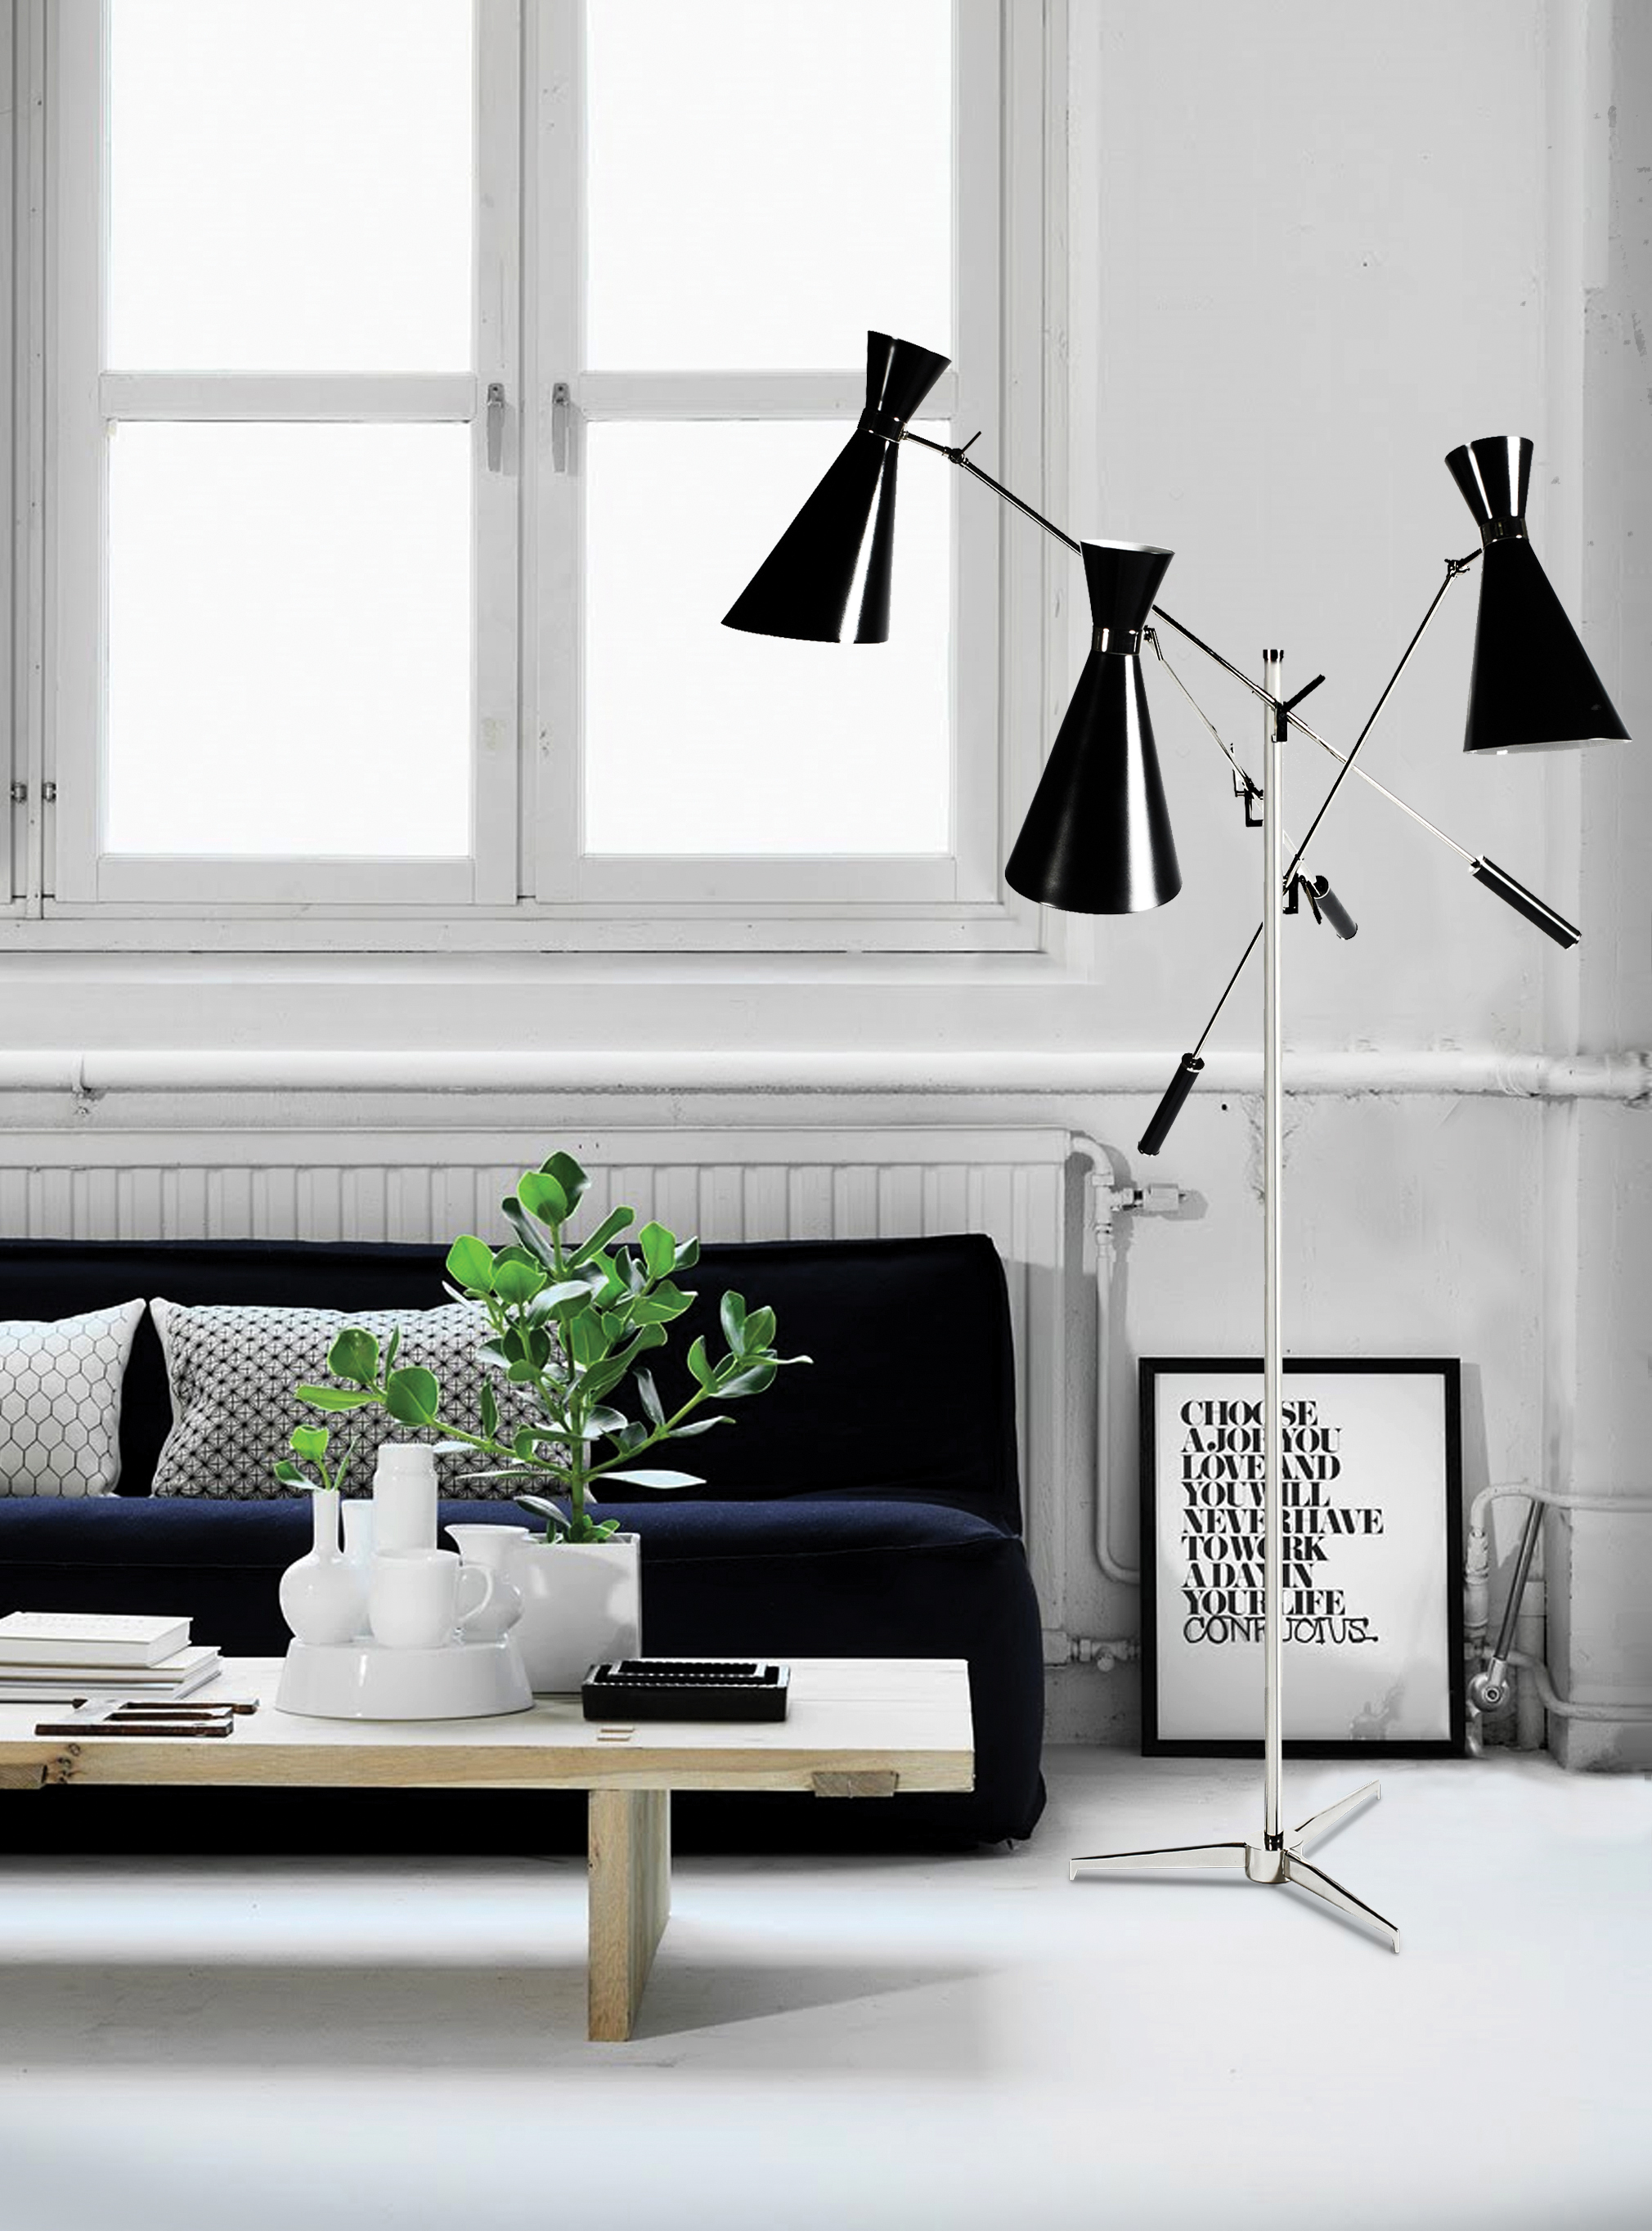 lighting mistakes Design Tips: Lighting Mistakes You Don't Want to Make 1 13